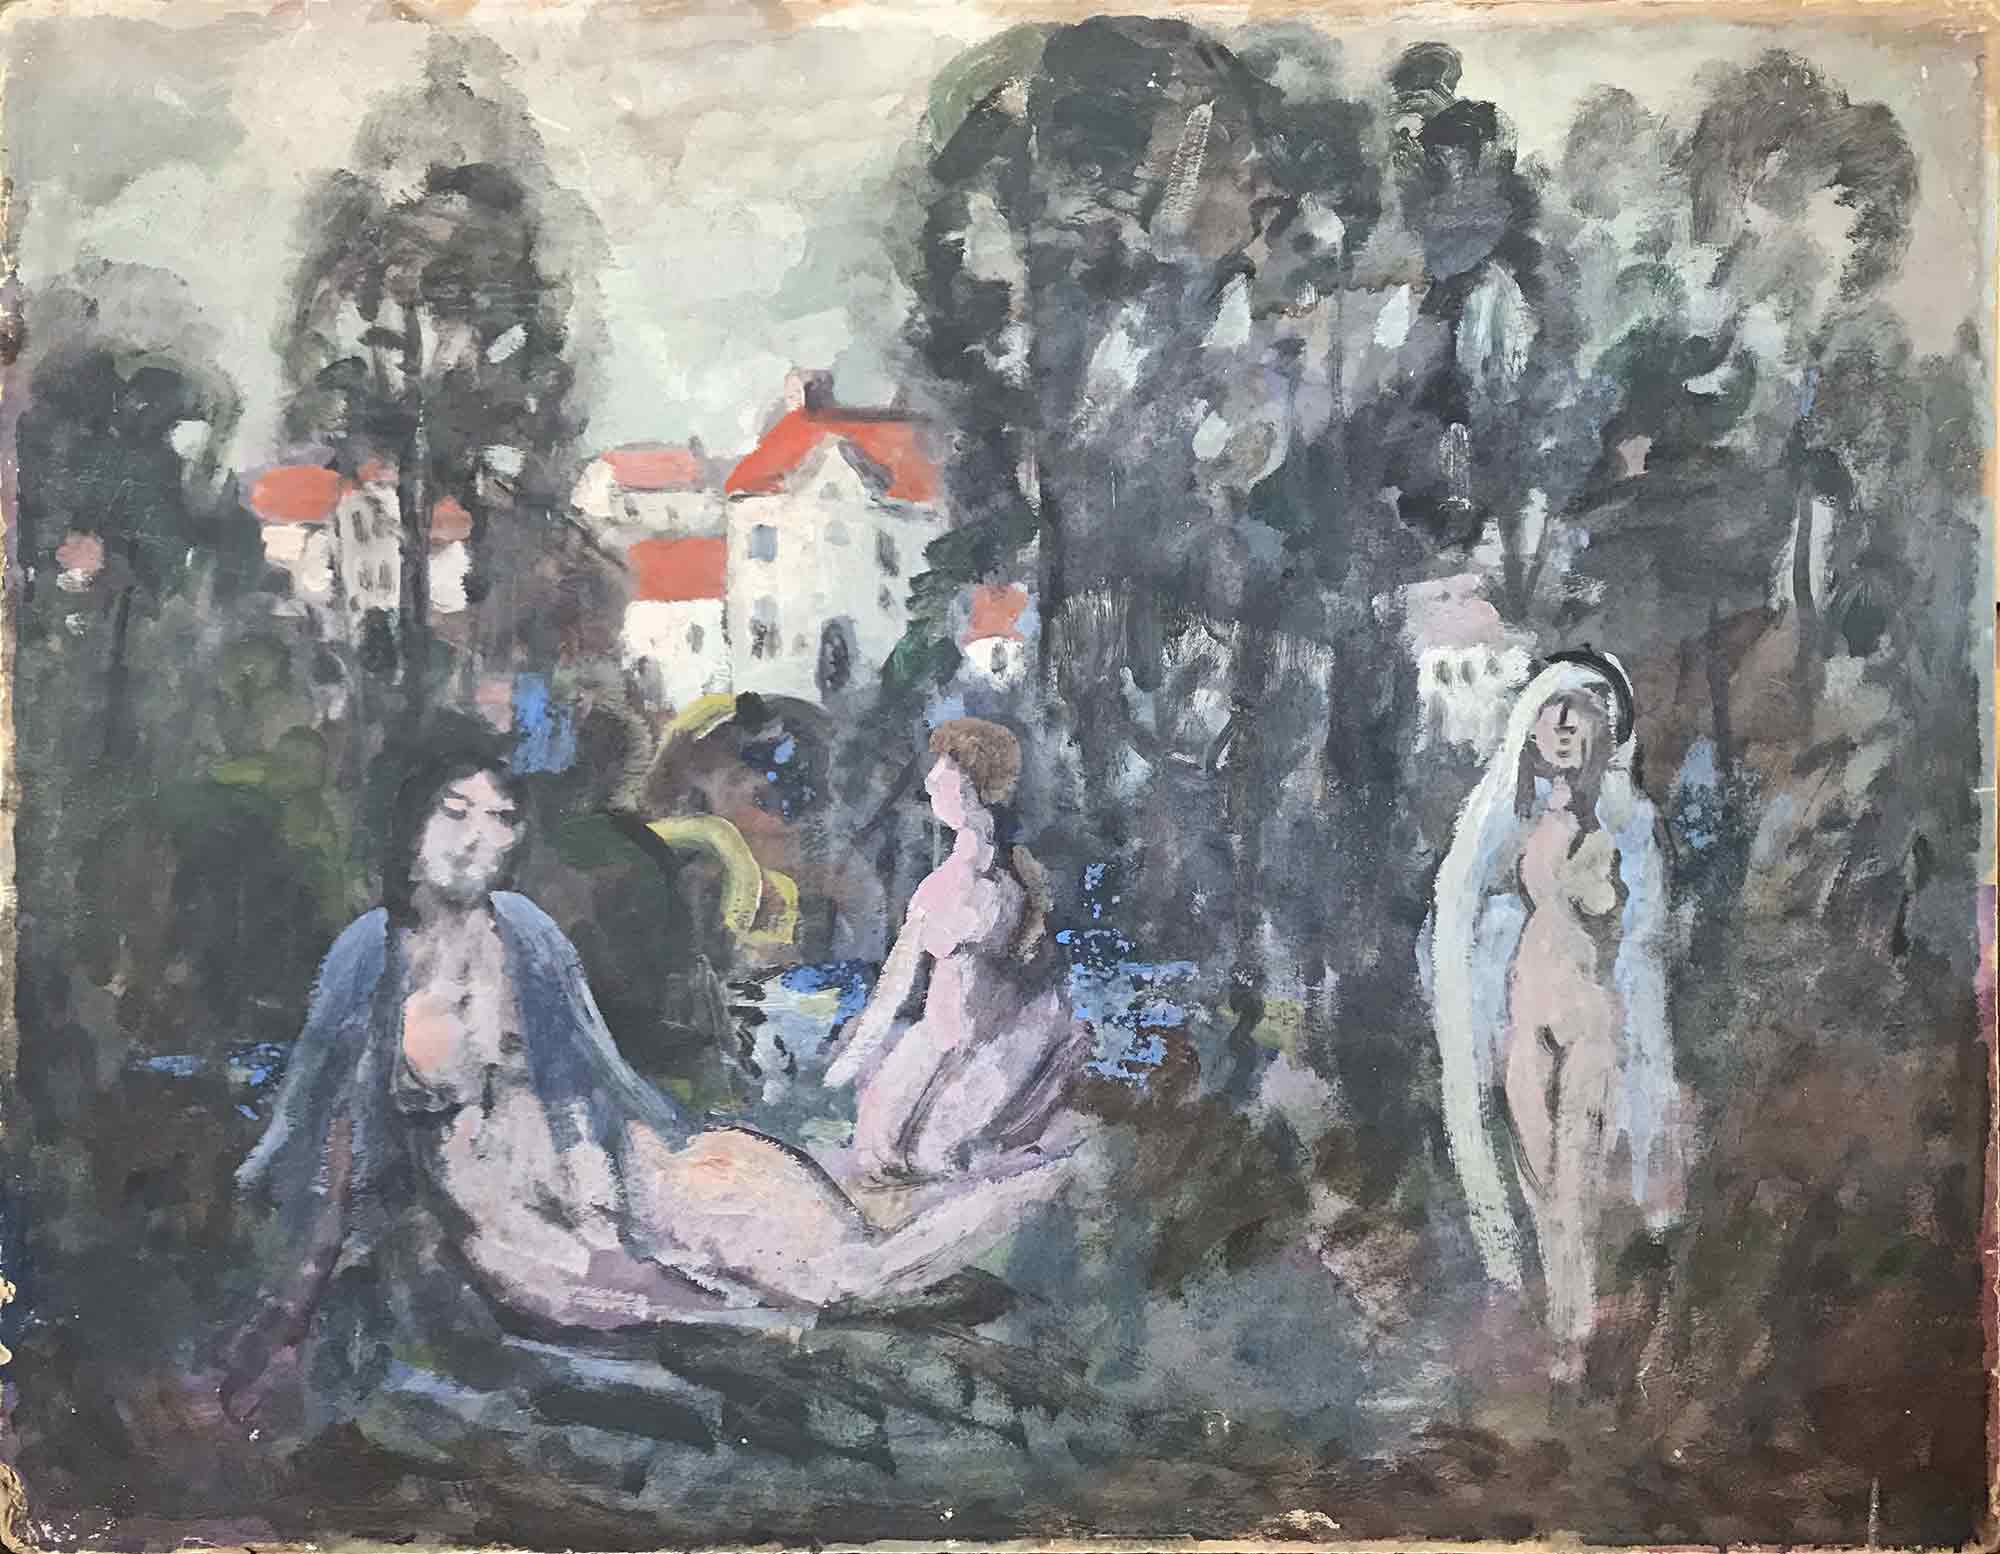 Phelan Gibb 'Naked Figures in a Woodland Scene'